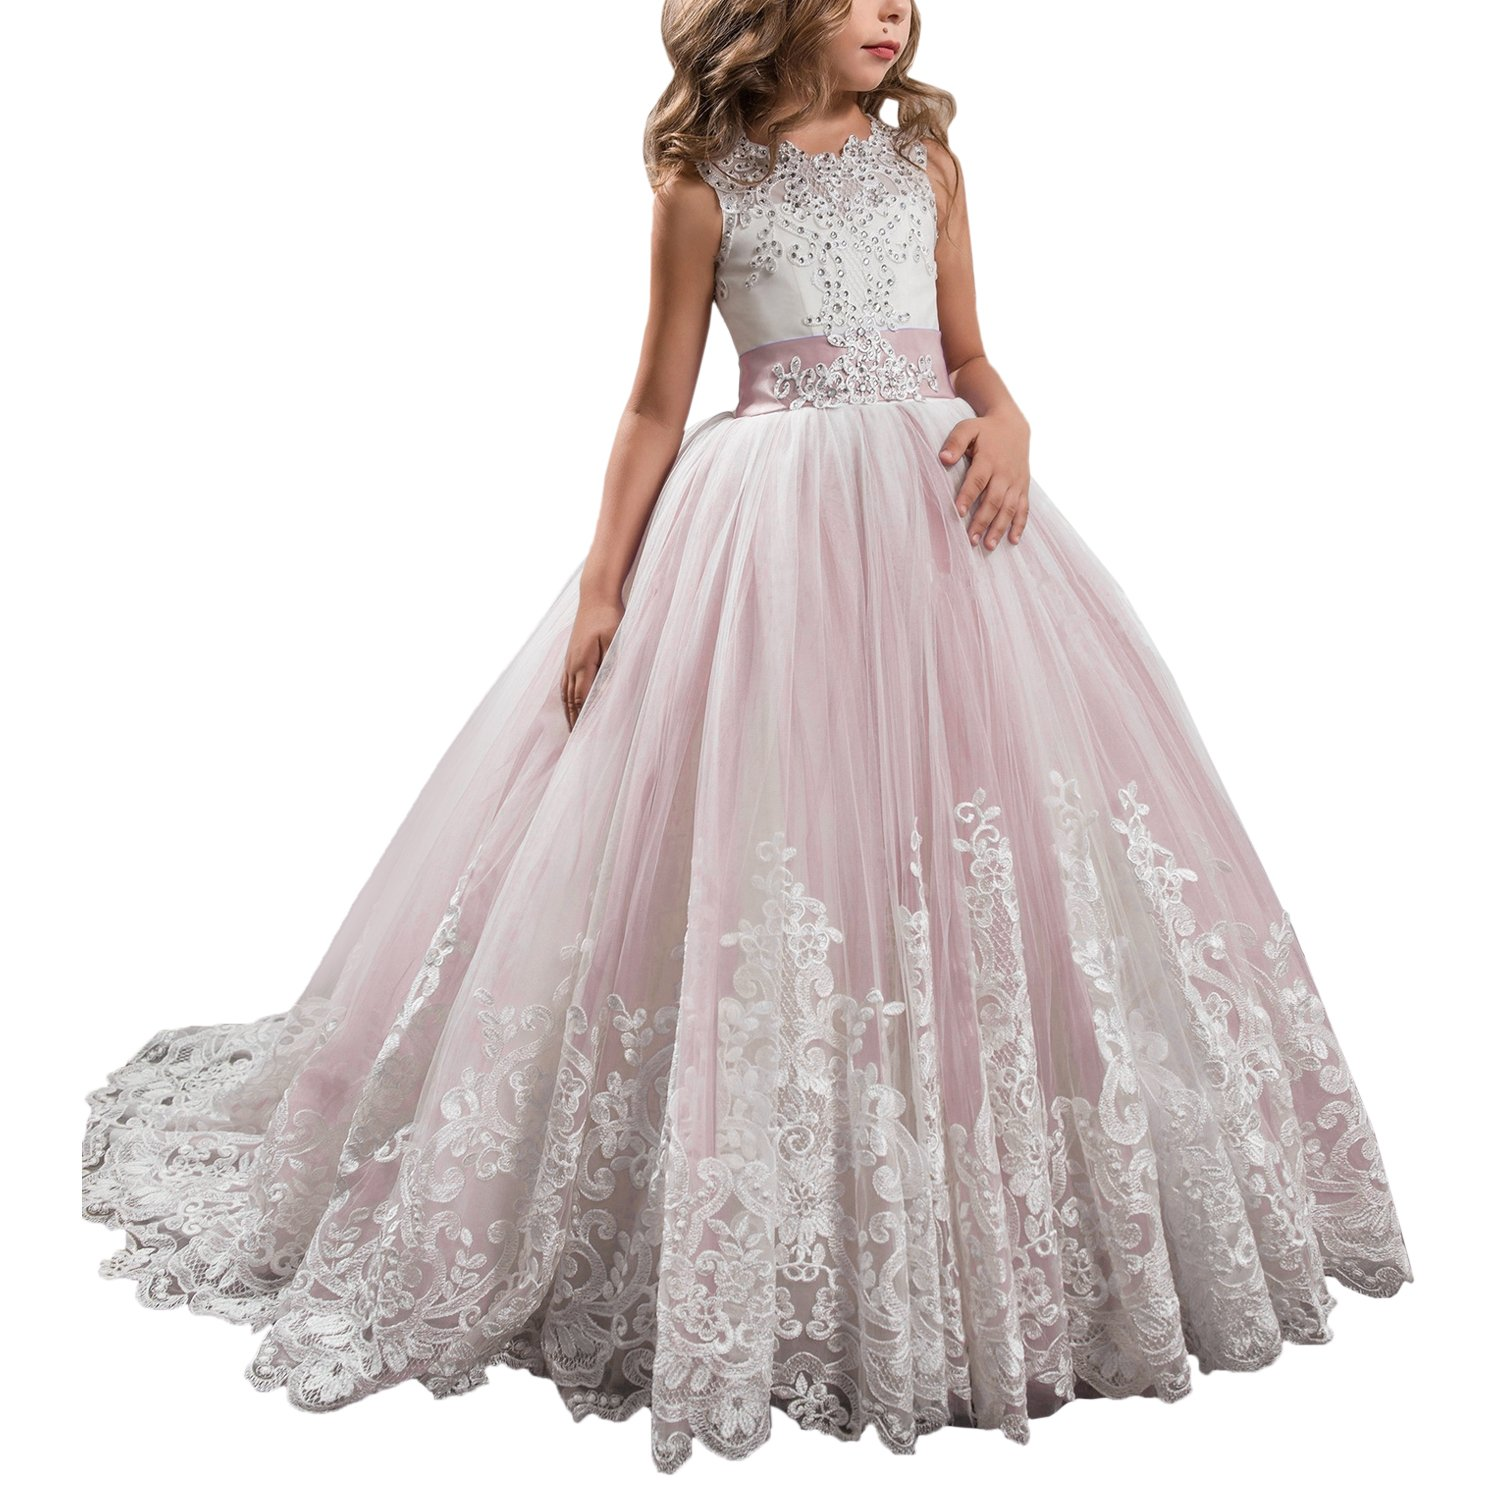 WDE Princess Lilac Long Girls Pageant Dresses Kids Prom Puffy Tulle ...